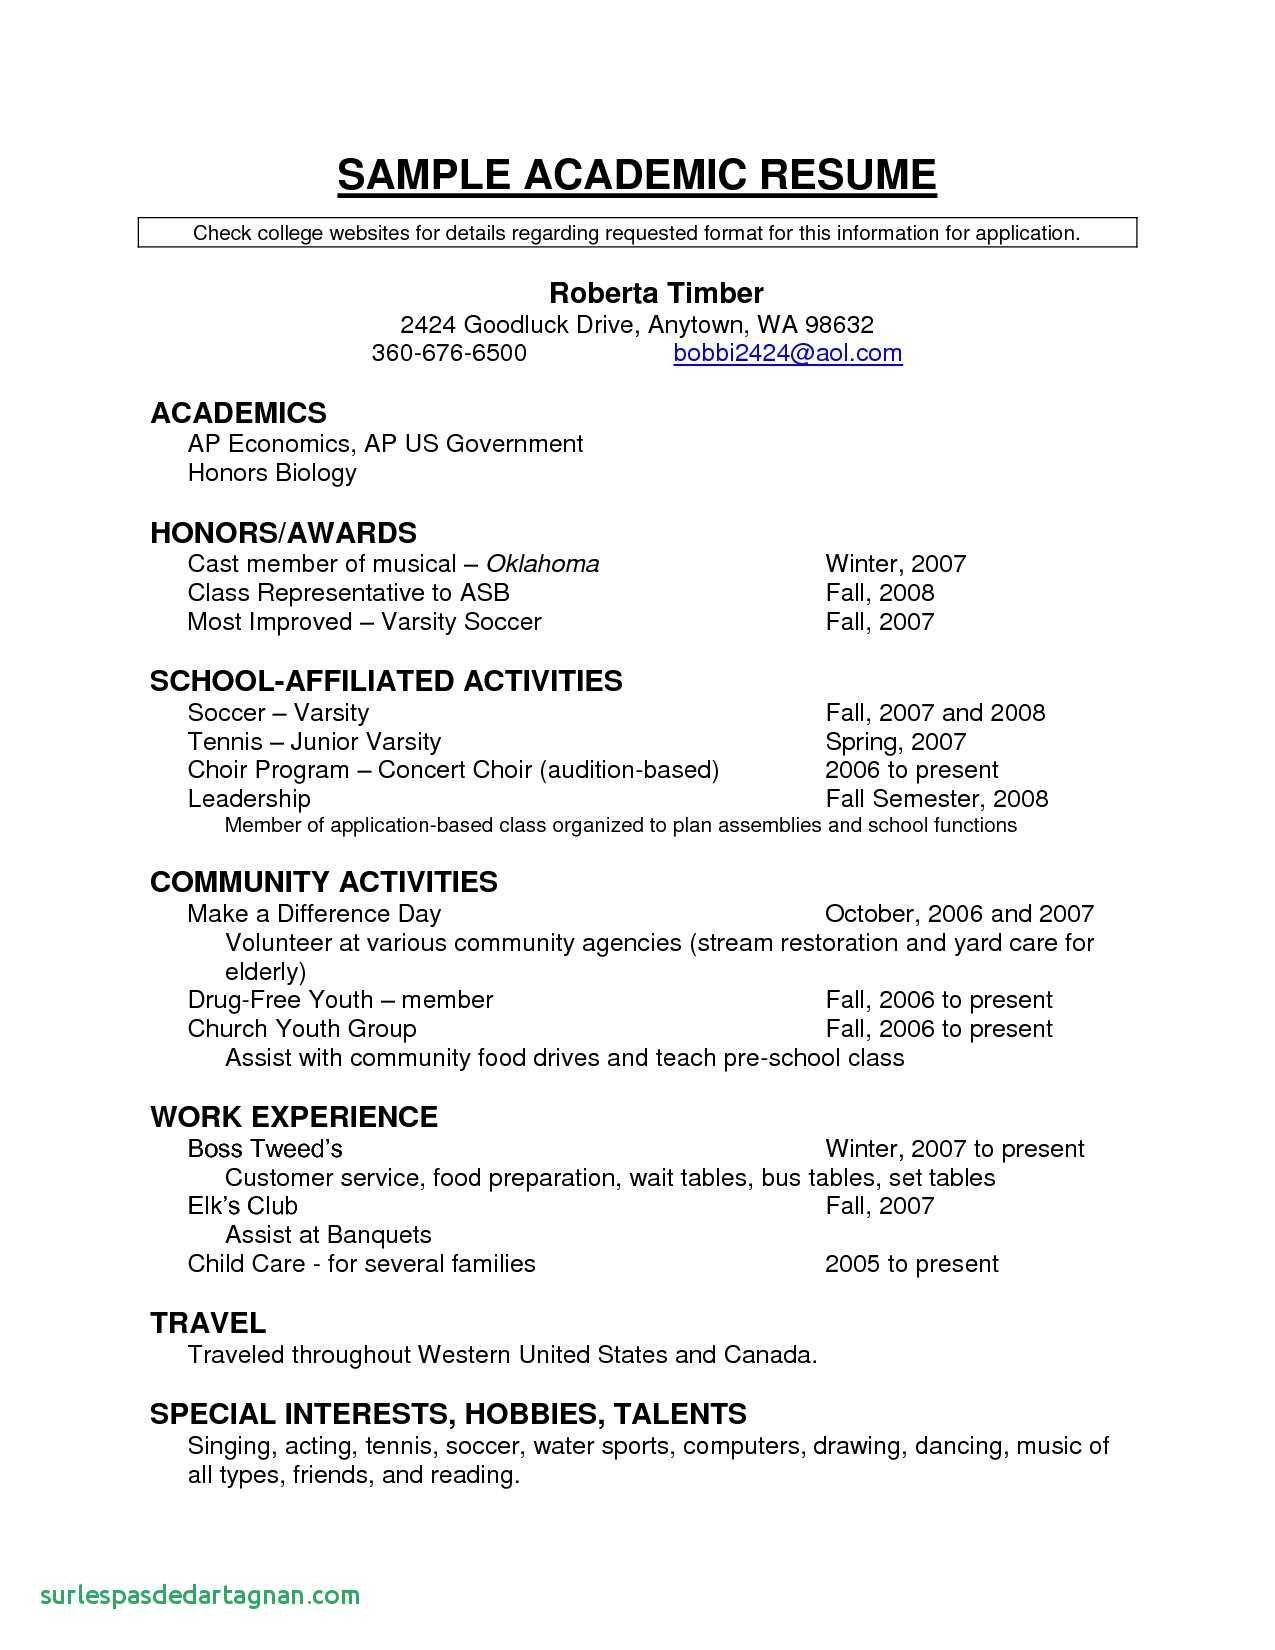 soccer resume template for college example-Good Resume Examples New Unique Resume for Highschool Students Excellent Resumes 0d High Good Resume 13-o